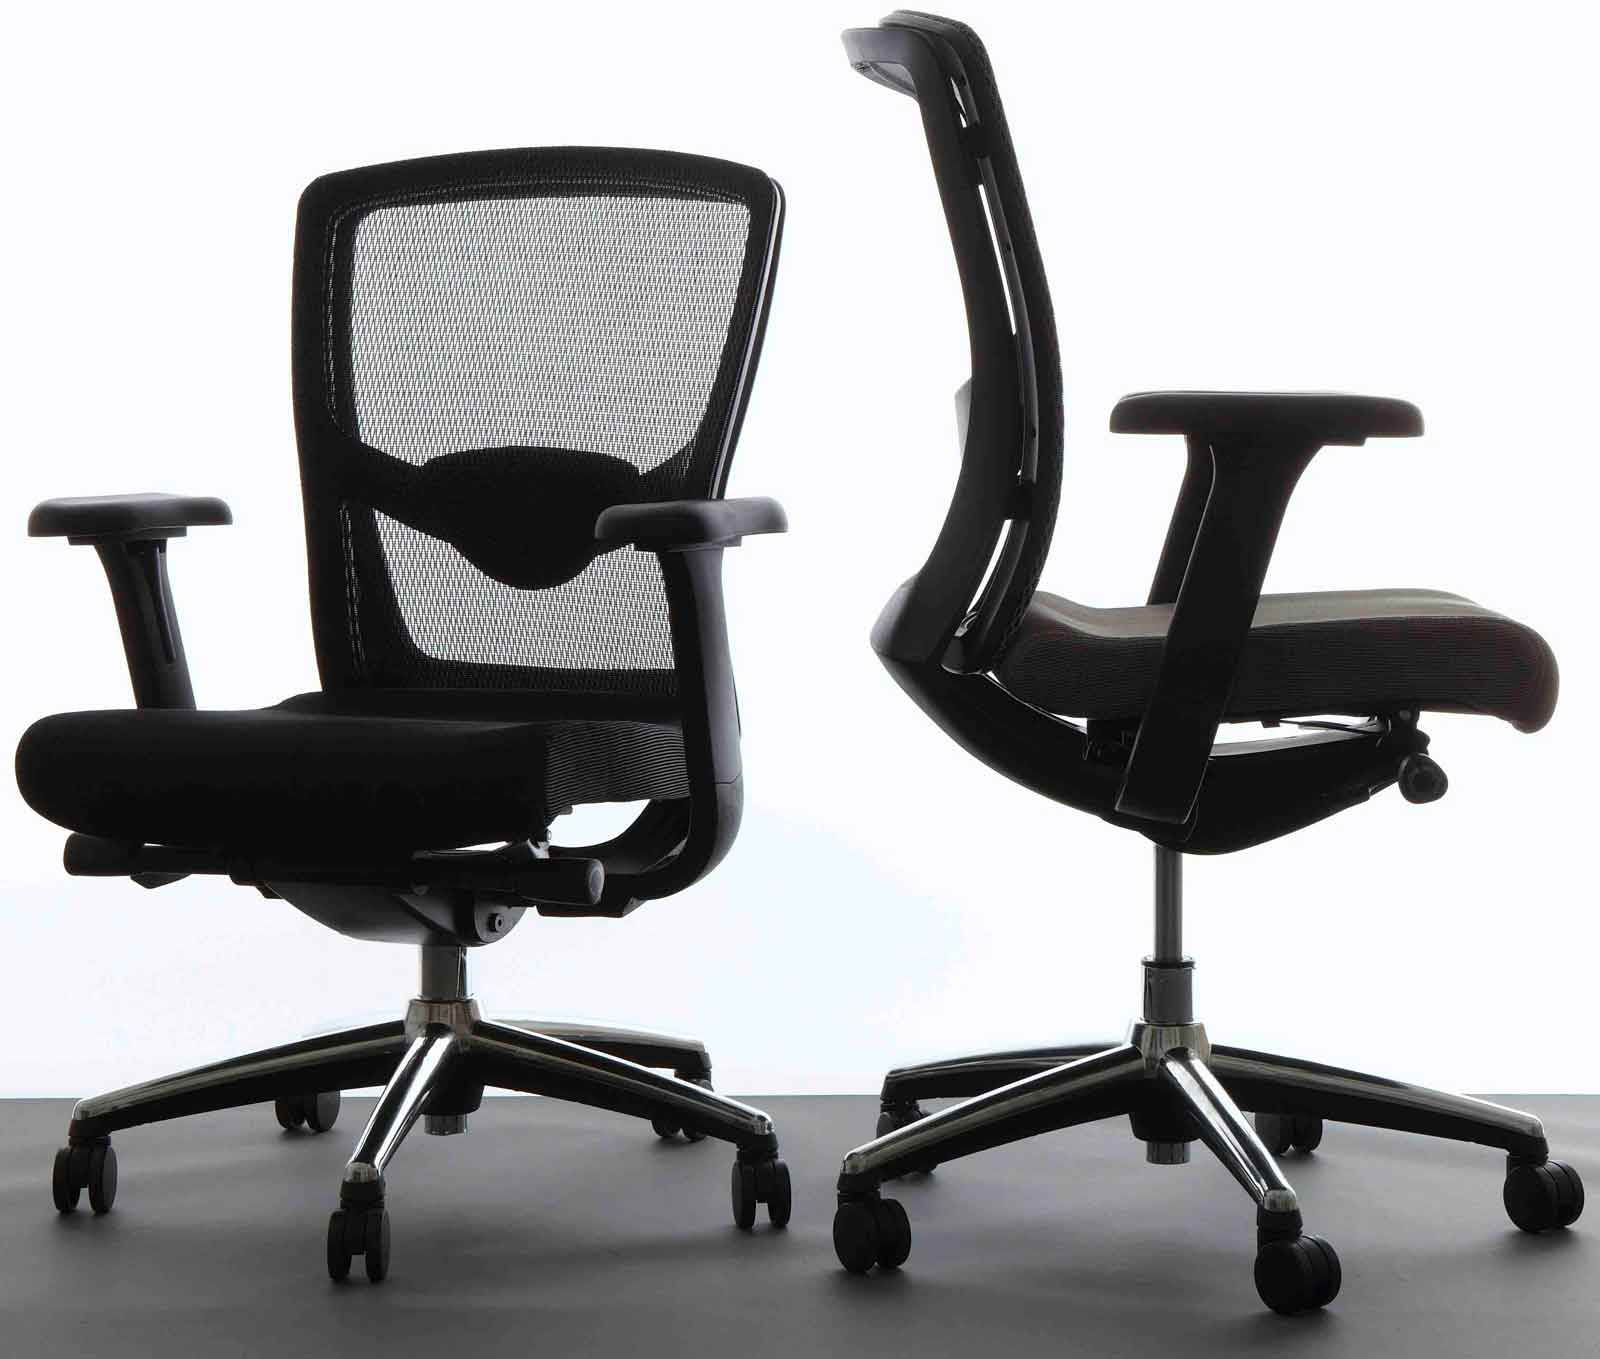 Office Star Mesh Ergonomic Desk Chairs with Seat Slider